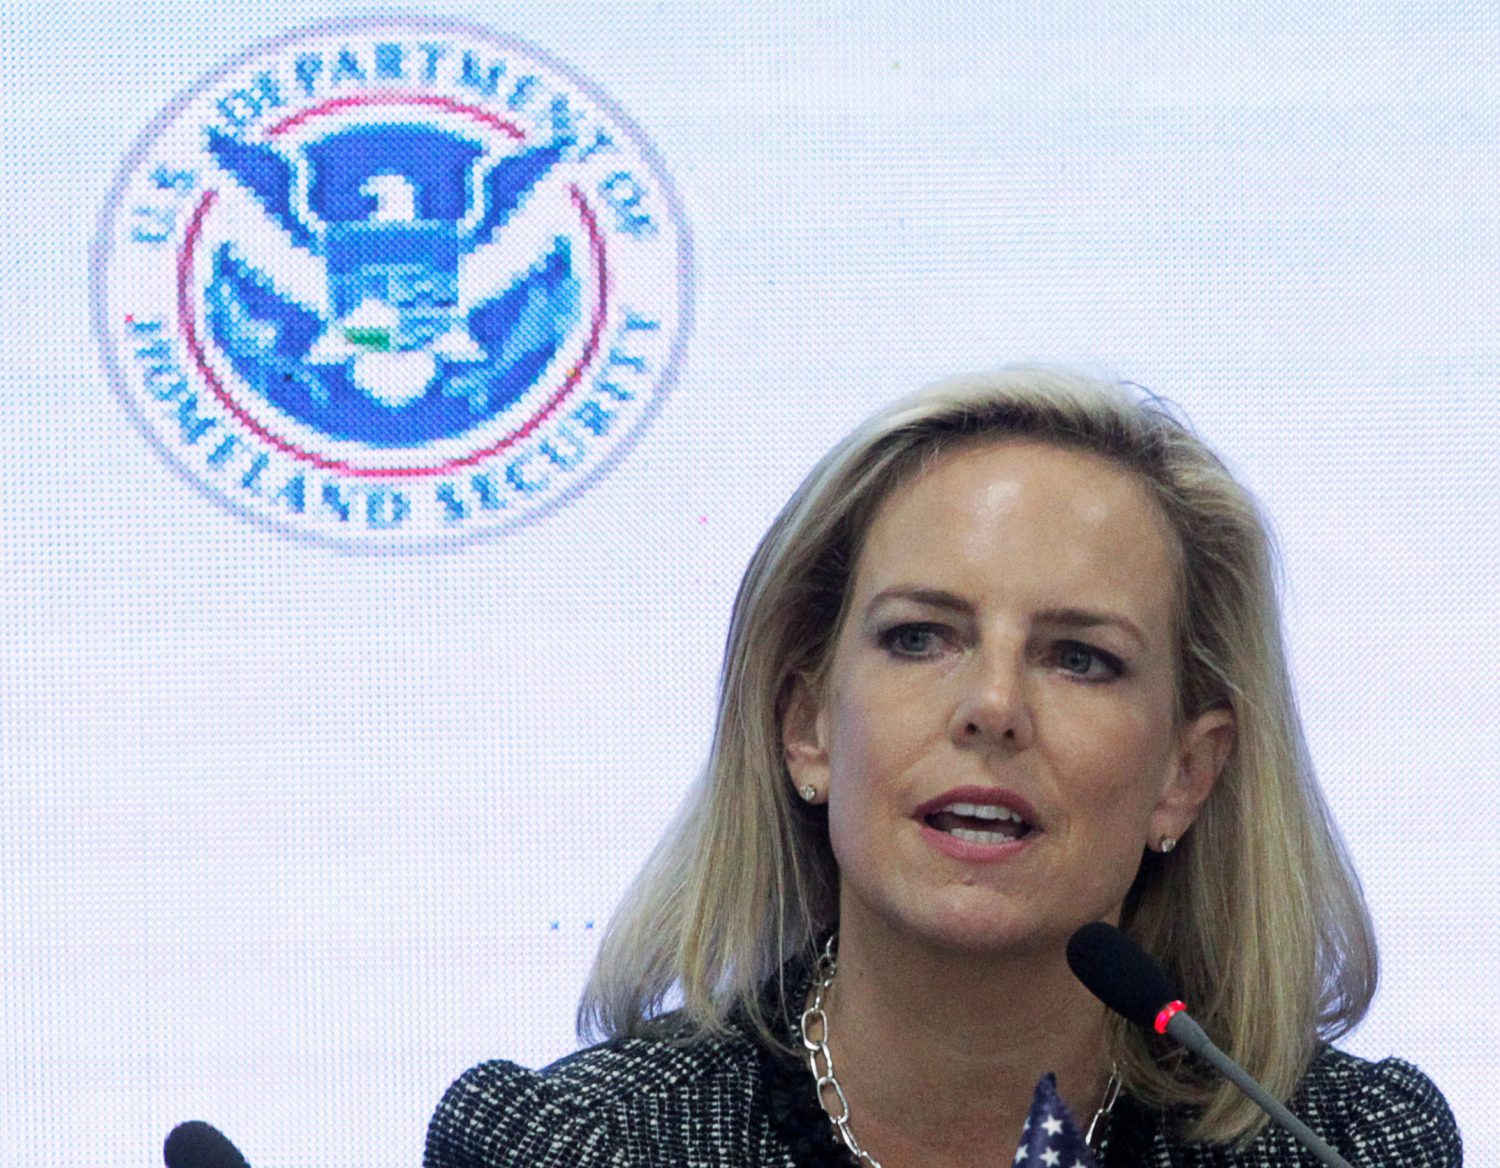 FILE PHOTO: U.S. Secretary of Homeland Security Kirstjen Nielsen speaks beside Honduras' President Juan Orlando Hernandez (not pictured) during a multilateral meeting at the Honduran Ministry of Security in Tegucigalpa, Honduras, March 27, 2019. REUTERS/Jorge Cabrera/File Photo